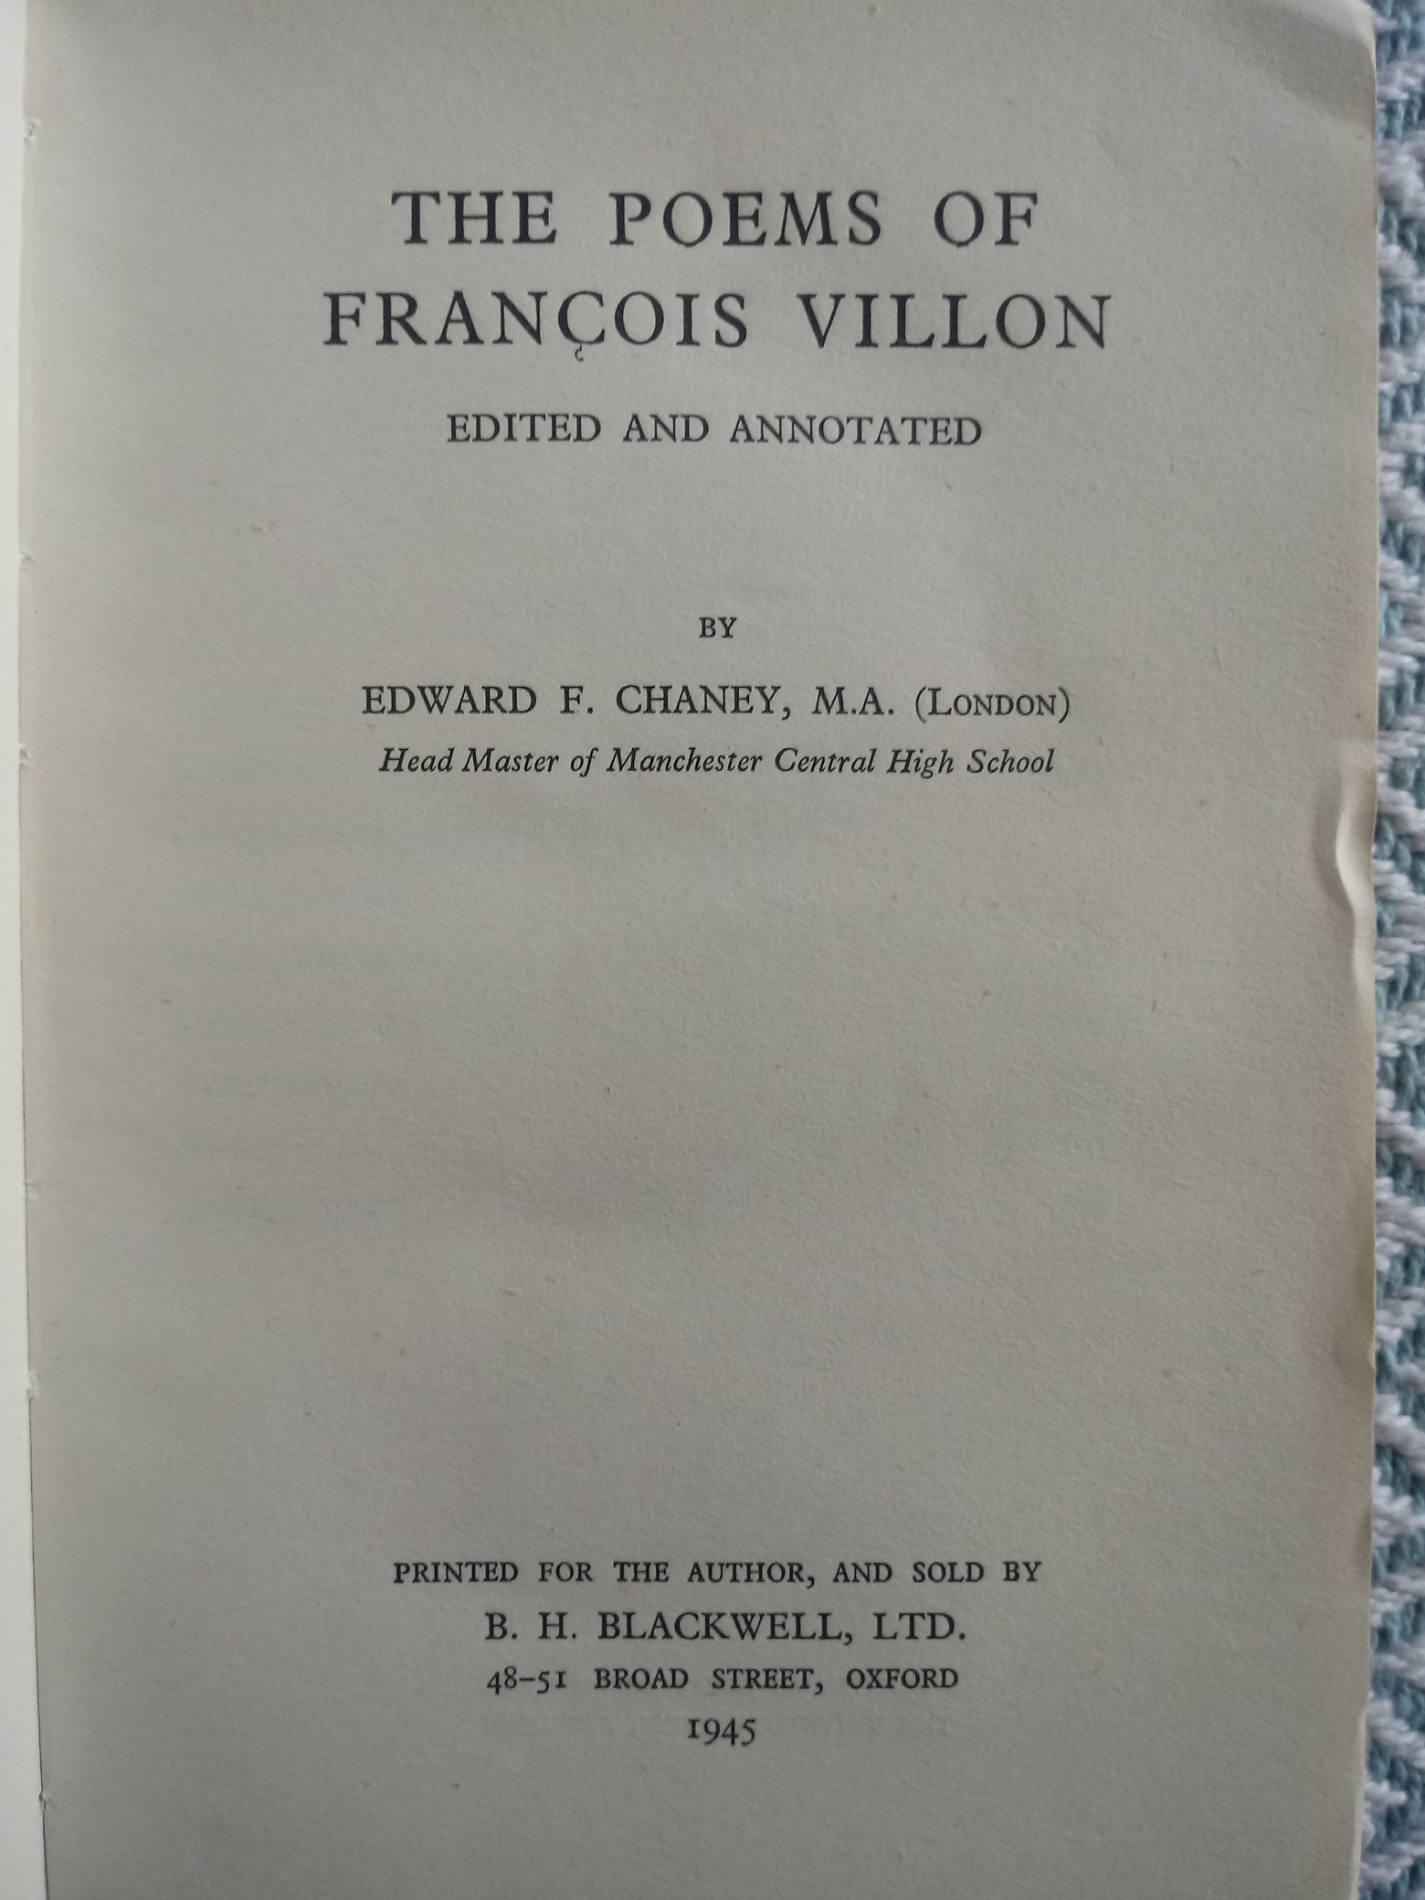 The Poems Of Francois Villon by Edward F. Chaney M. A. softback book 198 pages signed by owner - Image 3 of 3